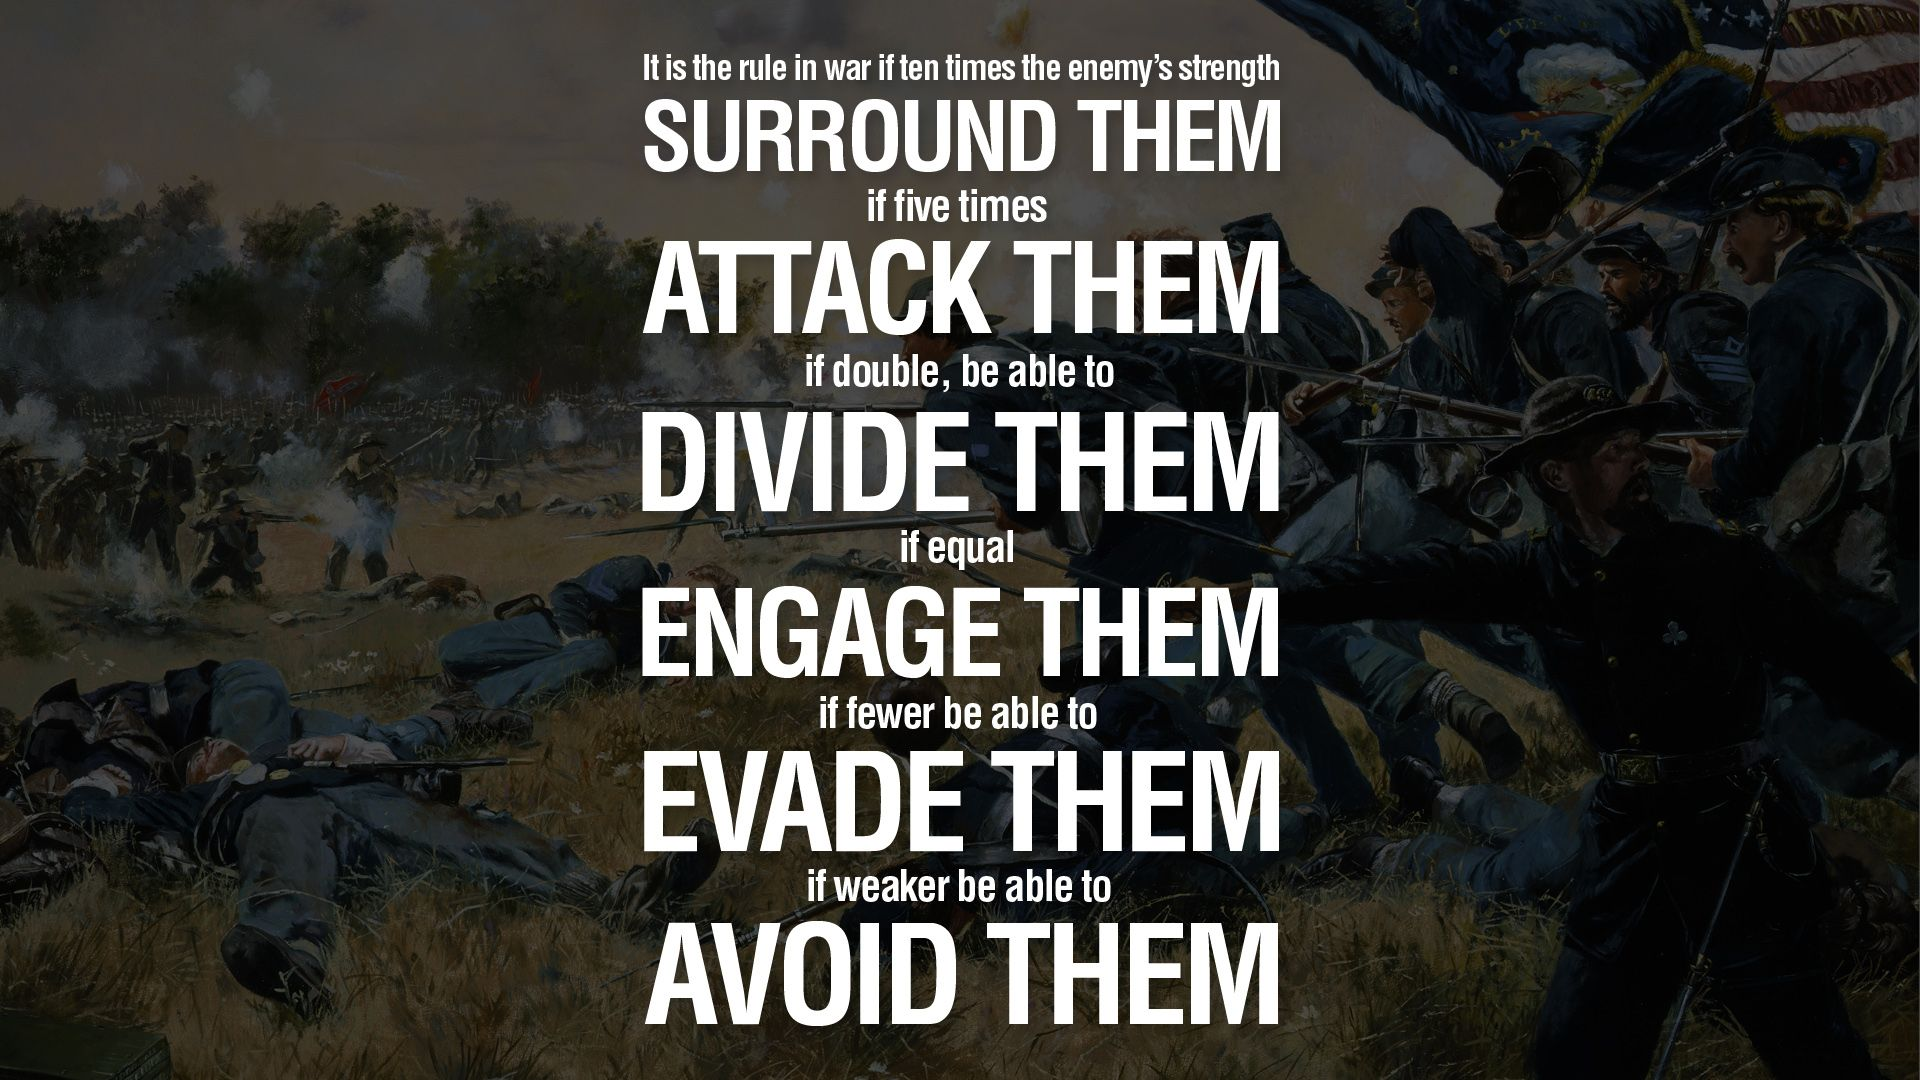 War Quotes Pin by Tyler on Meaningful Quotes   Quotes, Art of war quotes, War  War Quotes